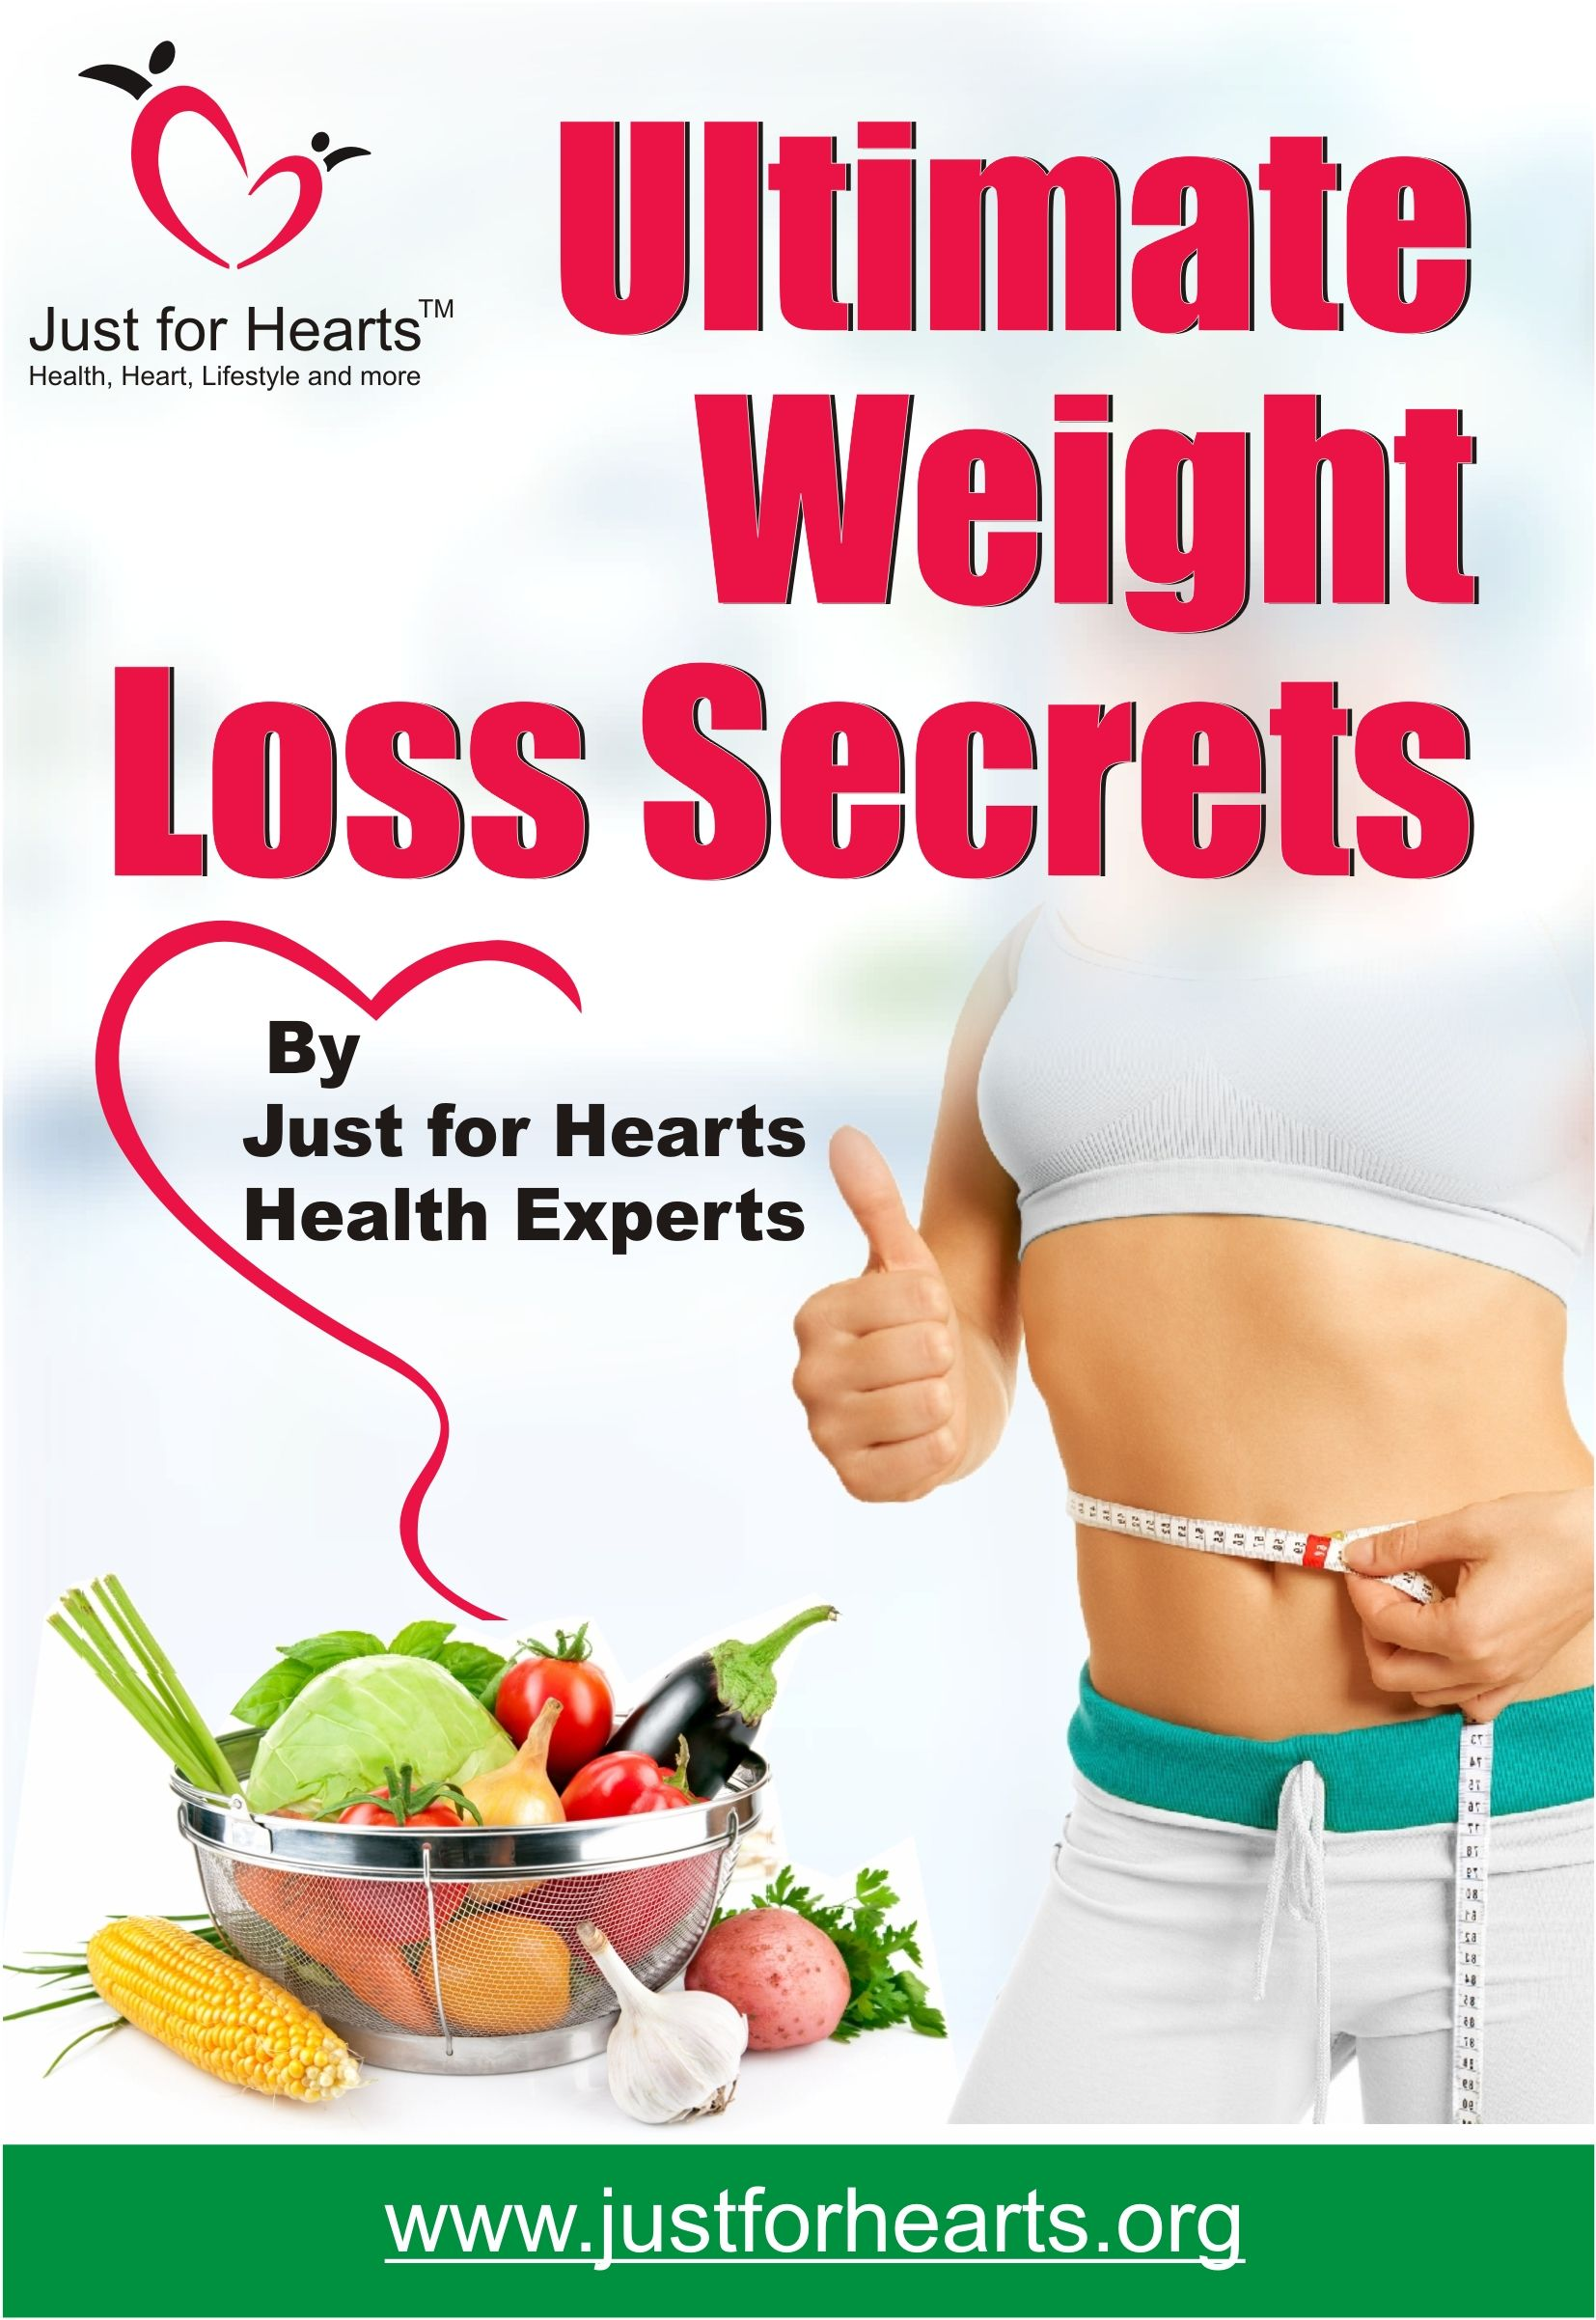 Solid advertising for weight loss 16